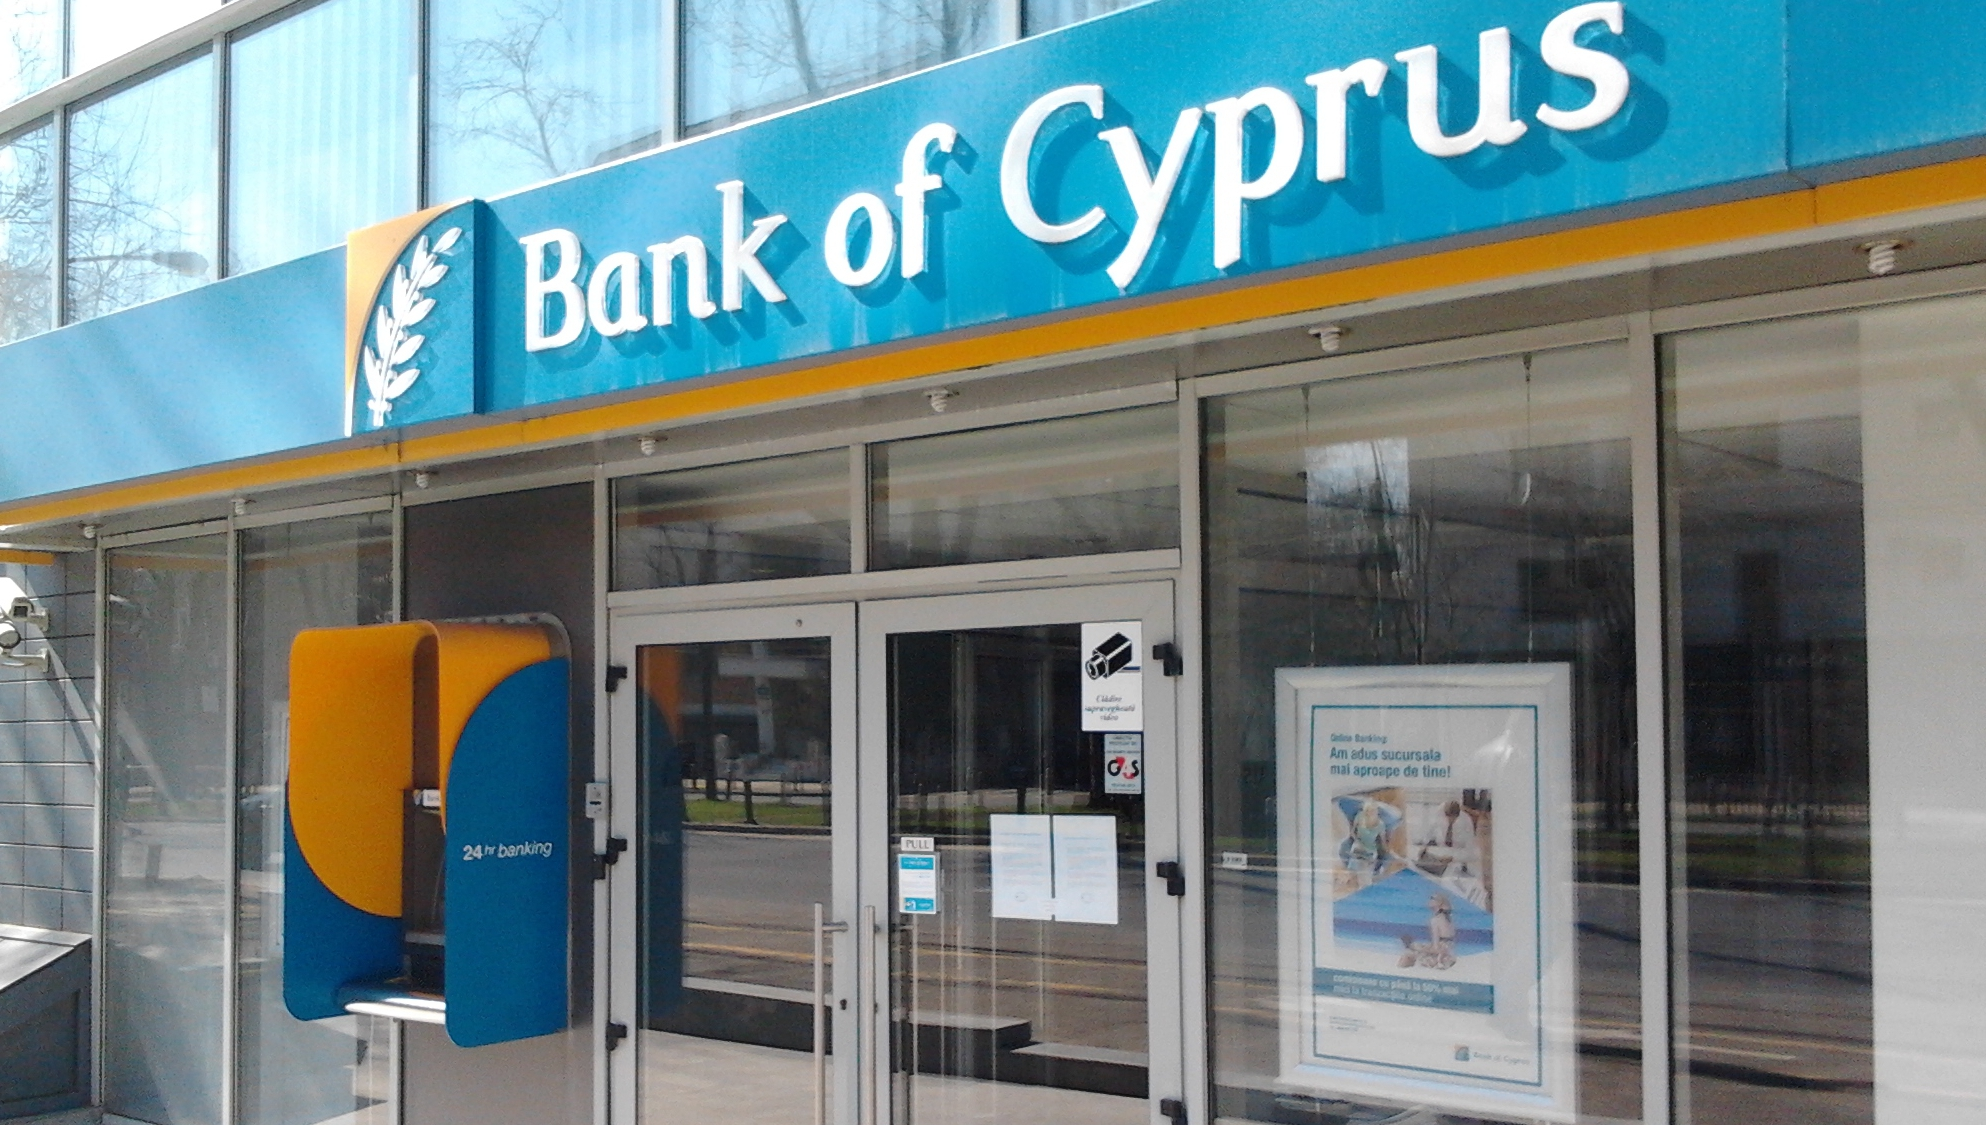 Bank of Cyprus appoints its new CEO